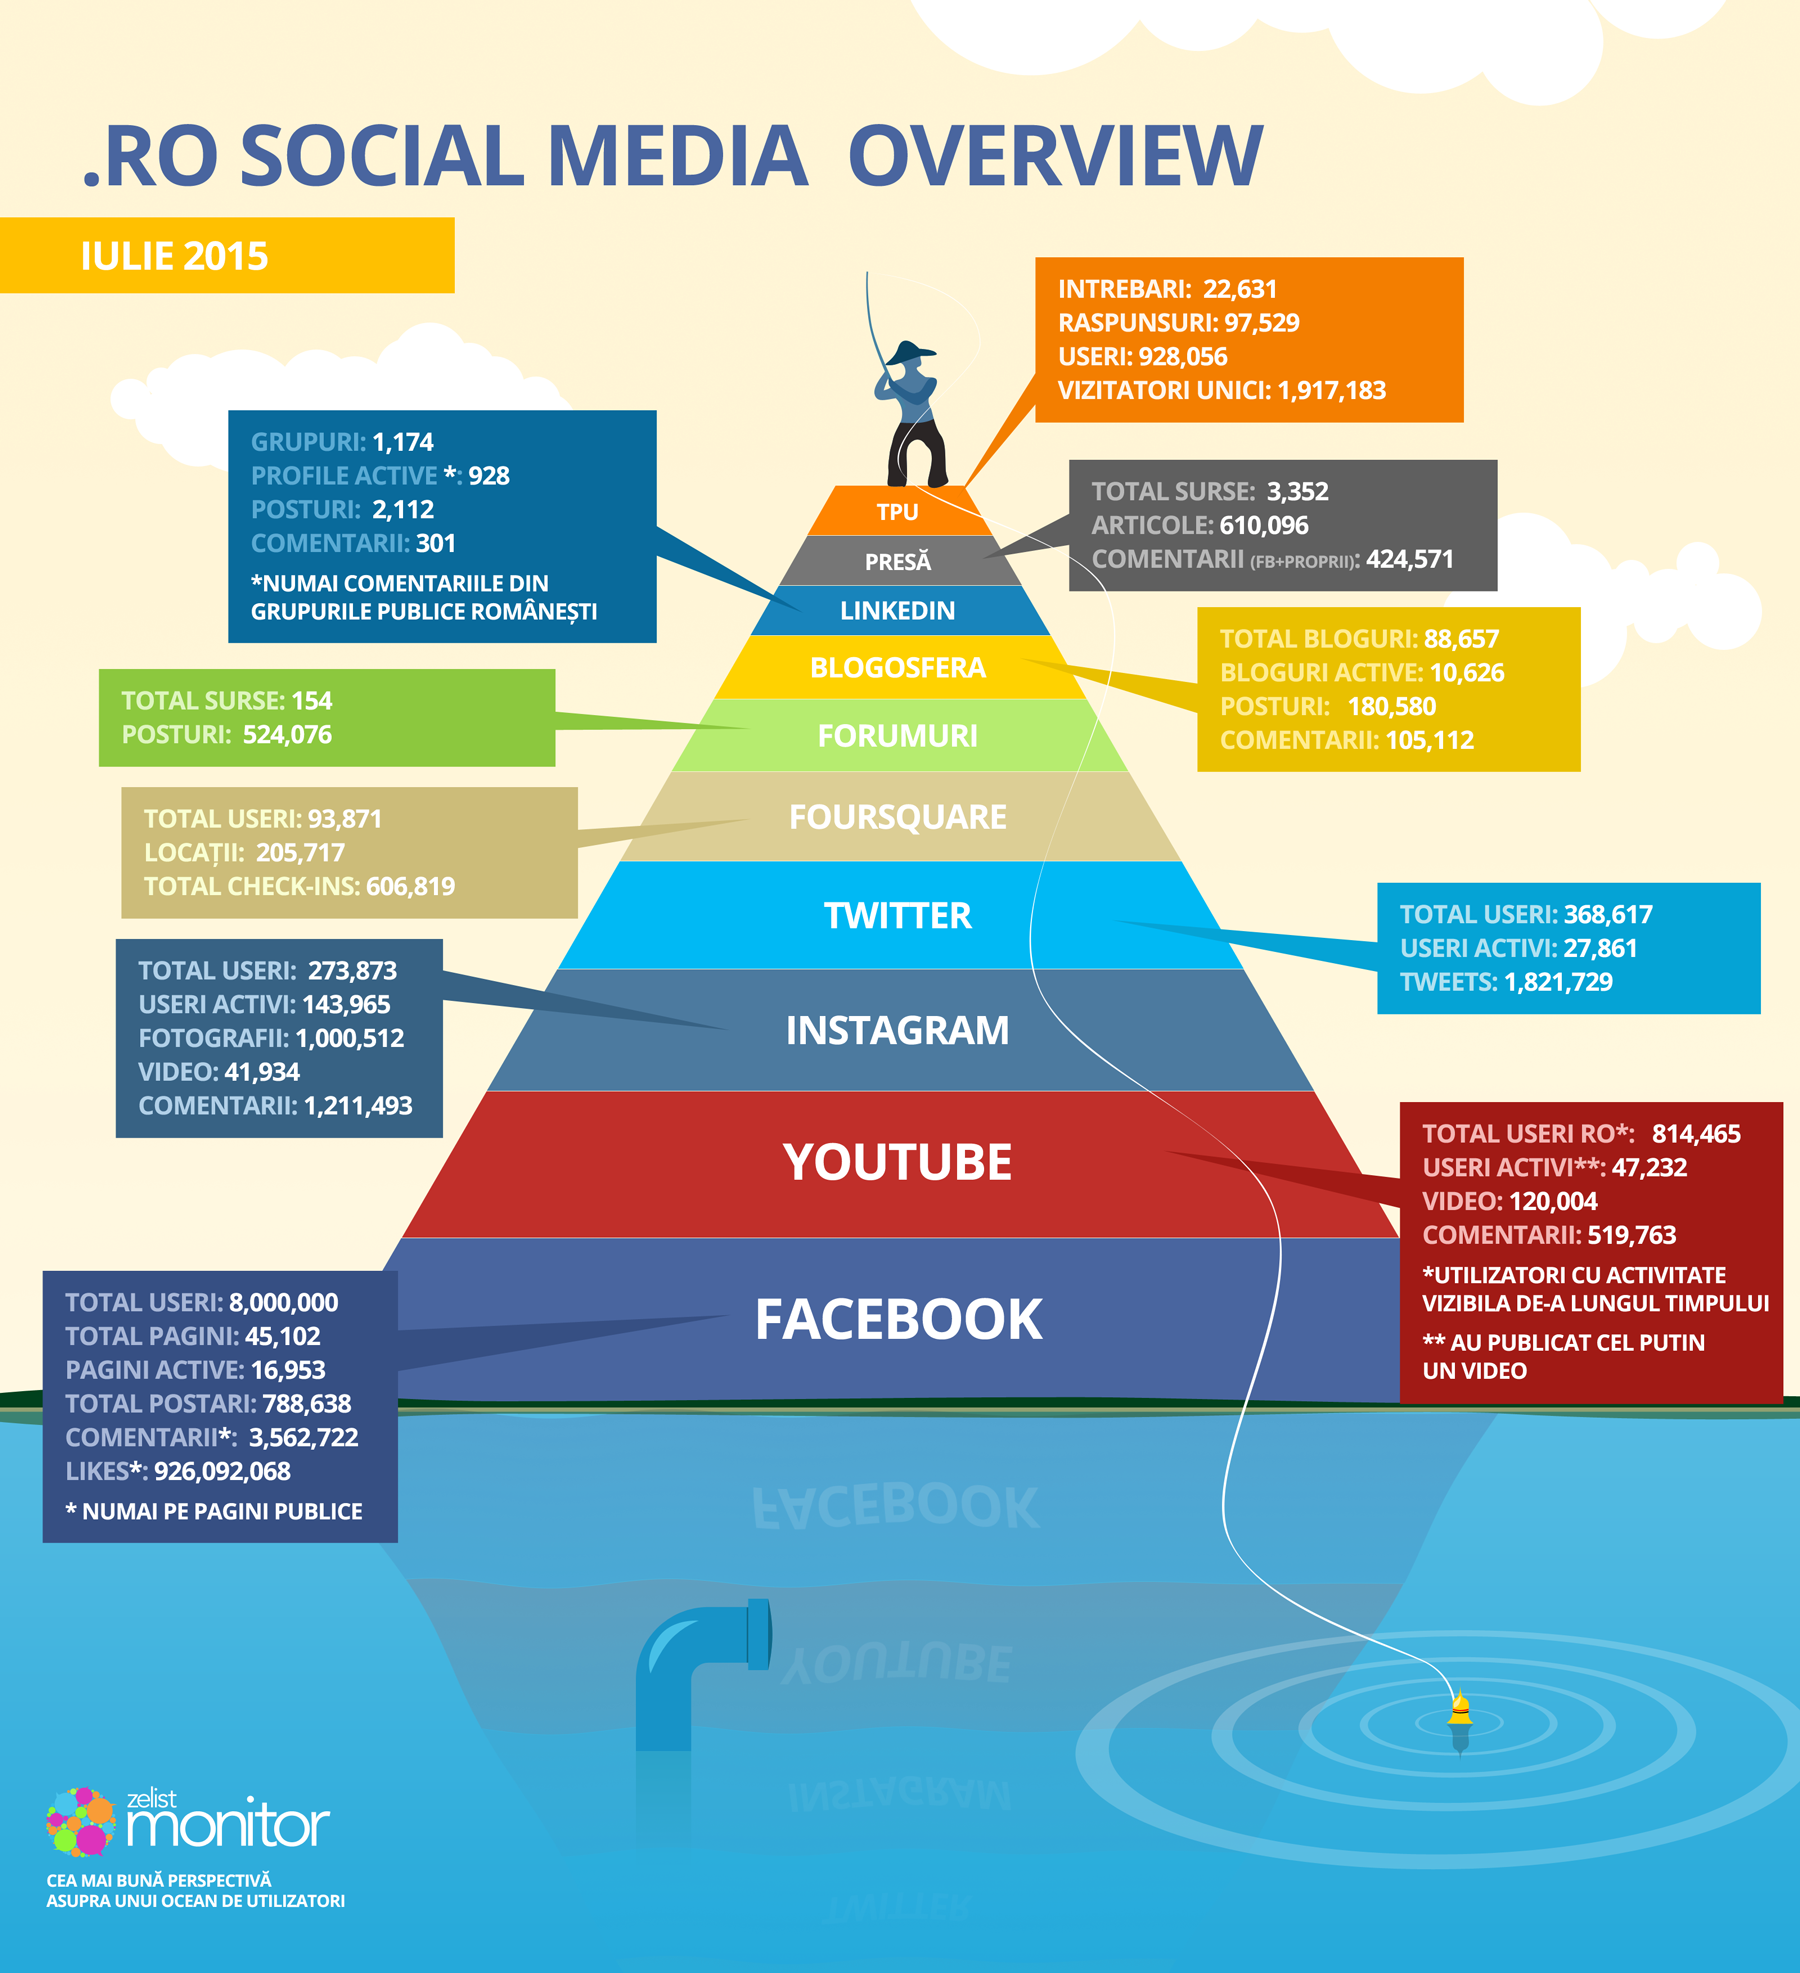 an overview of social media The importance of social media's role in modern marketing efforts can no longer be ignored it's an integral component in almost all successful marketing strategies.